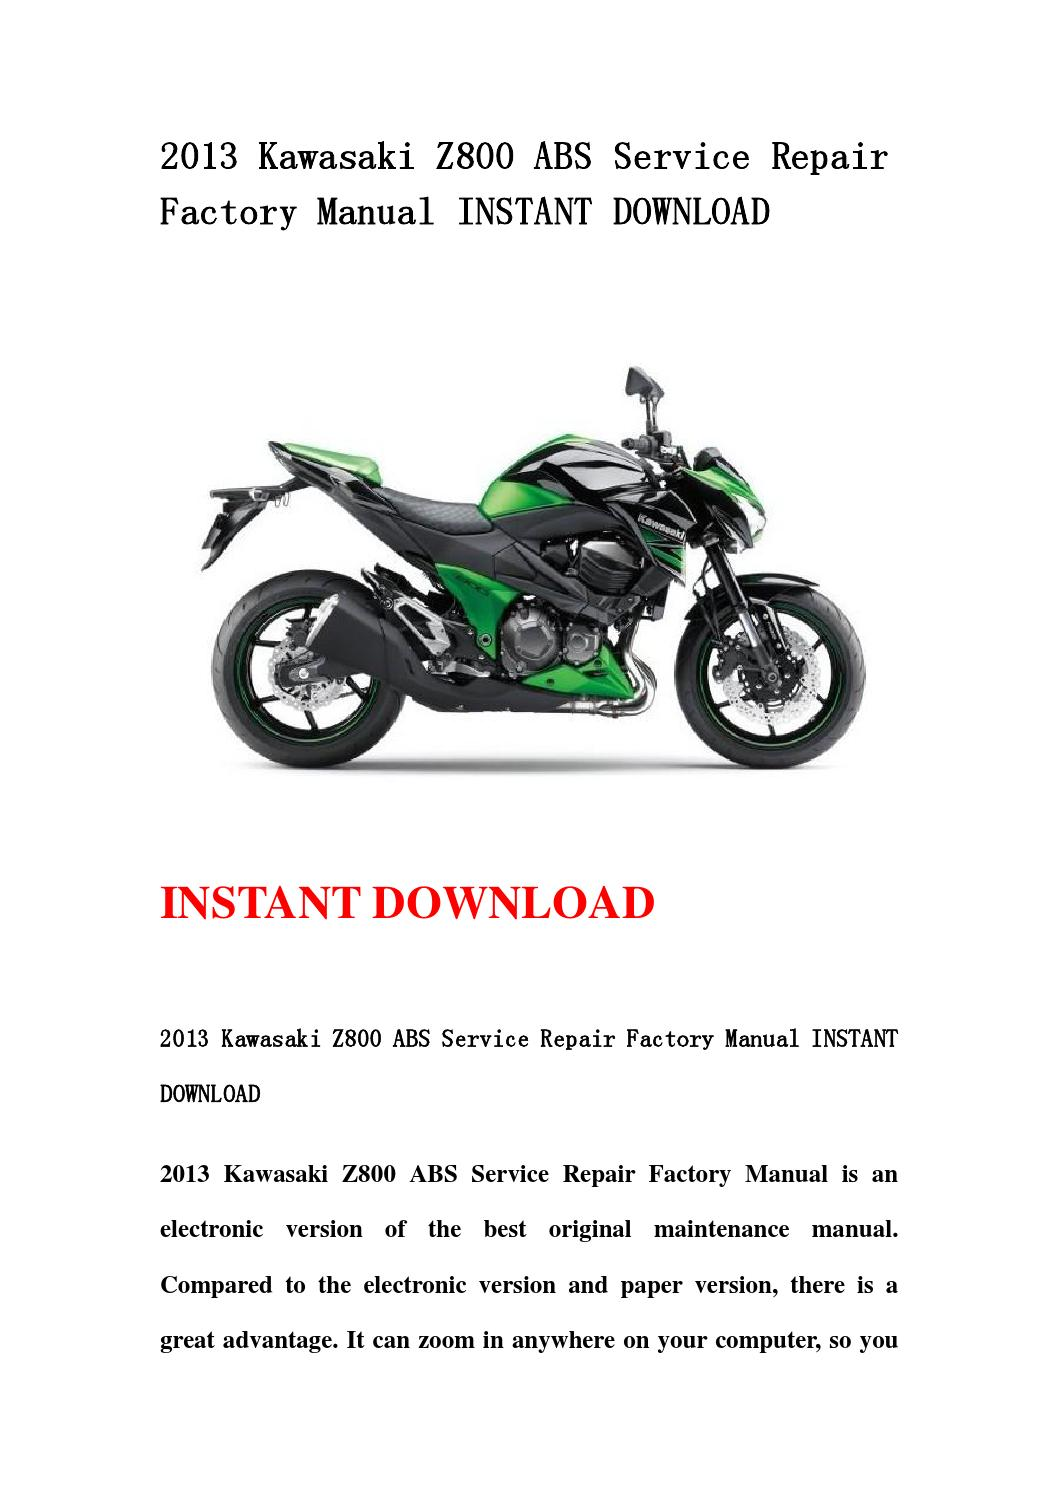 2013 kawasaki z800 abs service repair factory manual instant download by  hhgsbebfhb - issuu